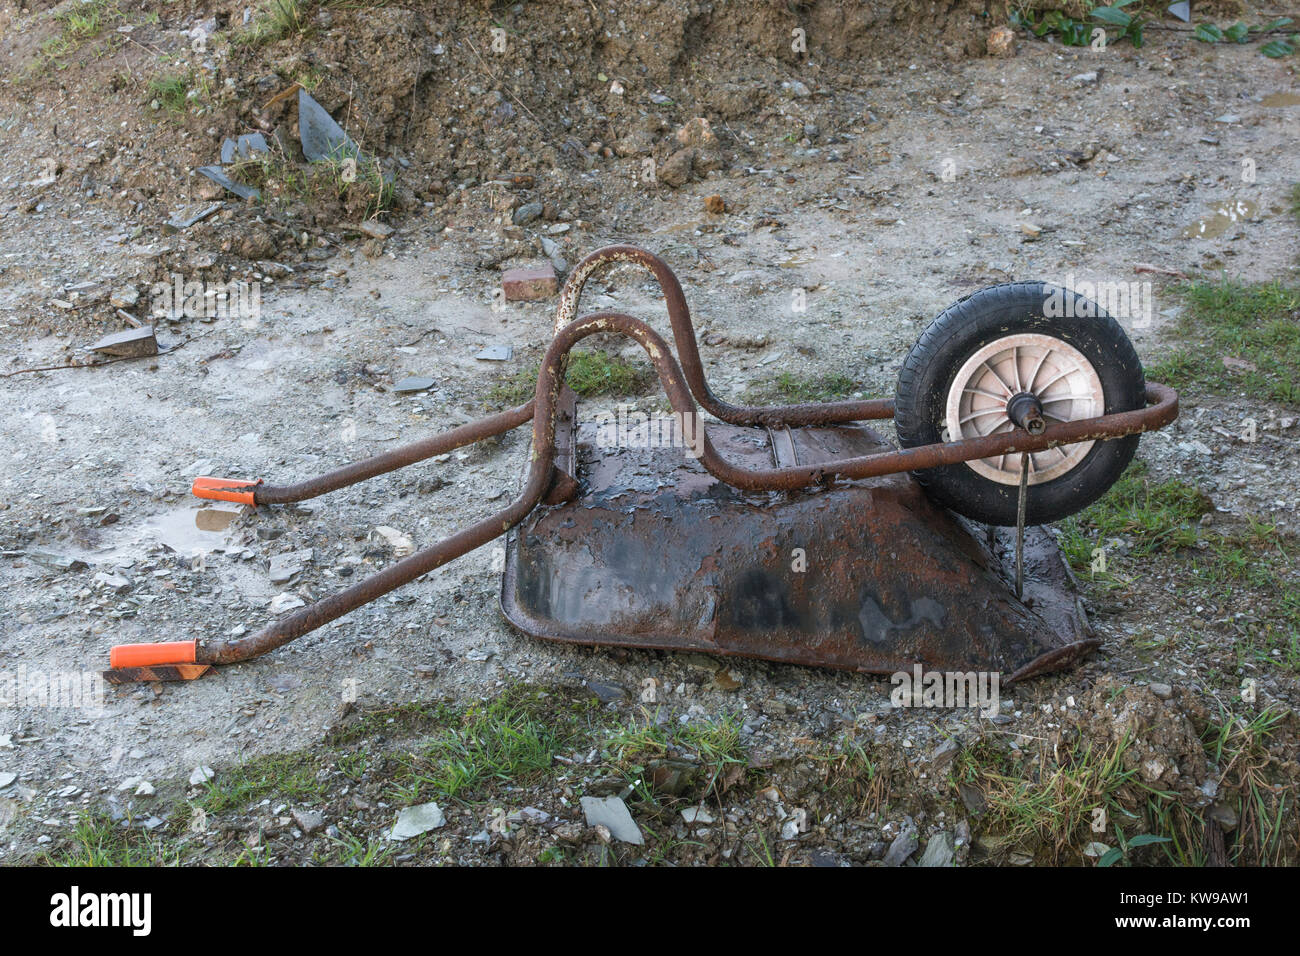 Upturned wheelbarrow on small construction site - metaphor for downturn in the construction industry. - Stock Image